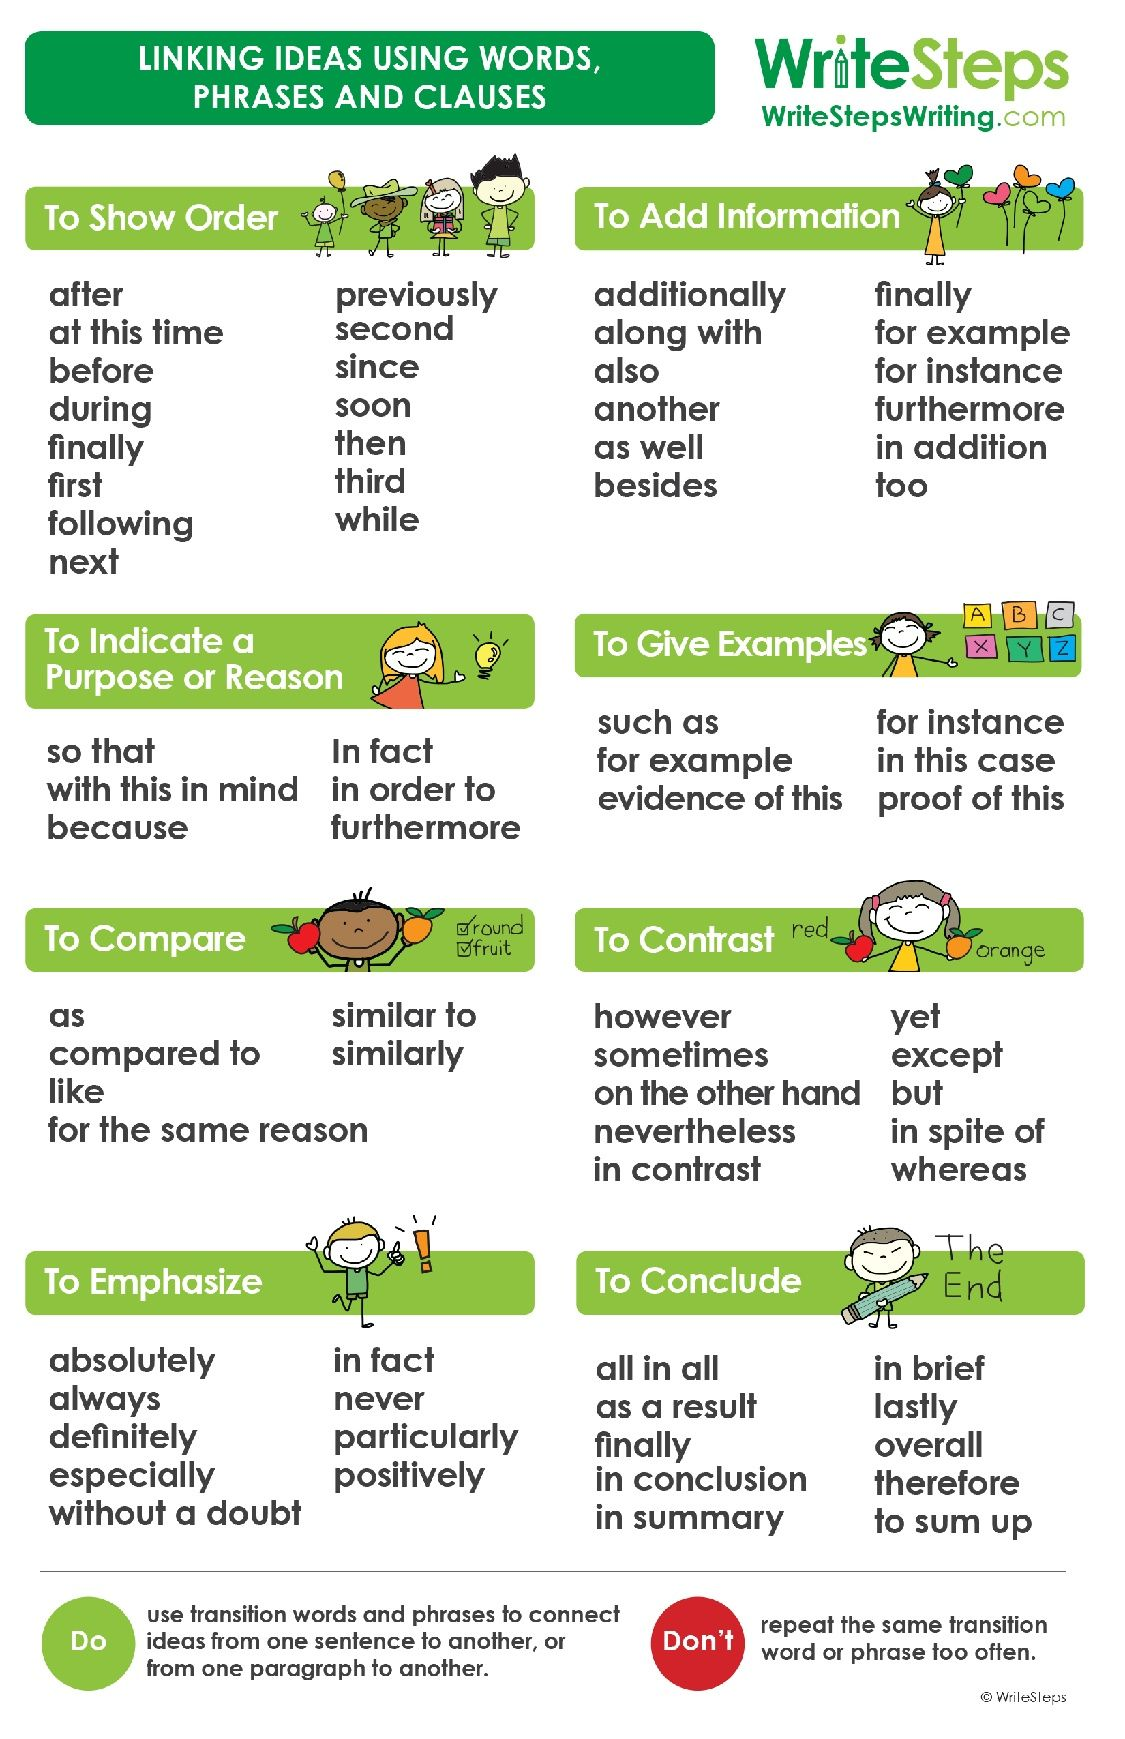 Do Your Students Sometimes Struggle With Transition Words